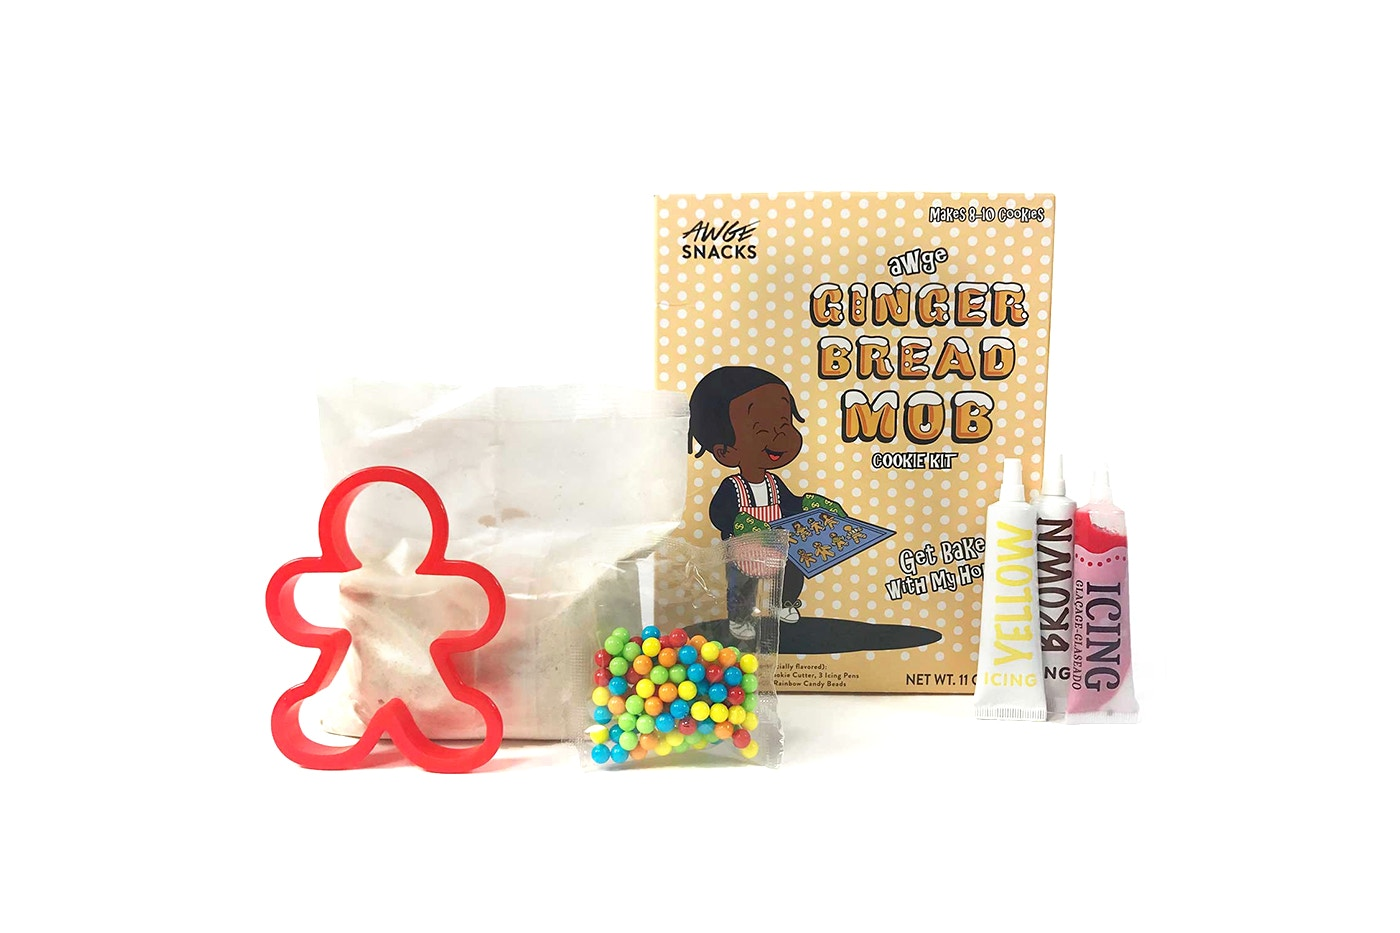 A$AP Rocky Releases 'Ginger Bread Mob' Cookie Kit